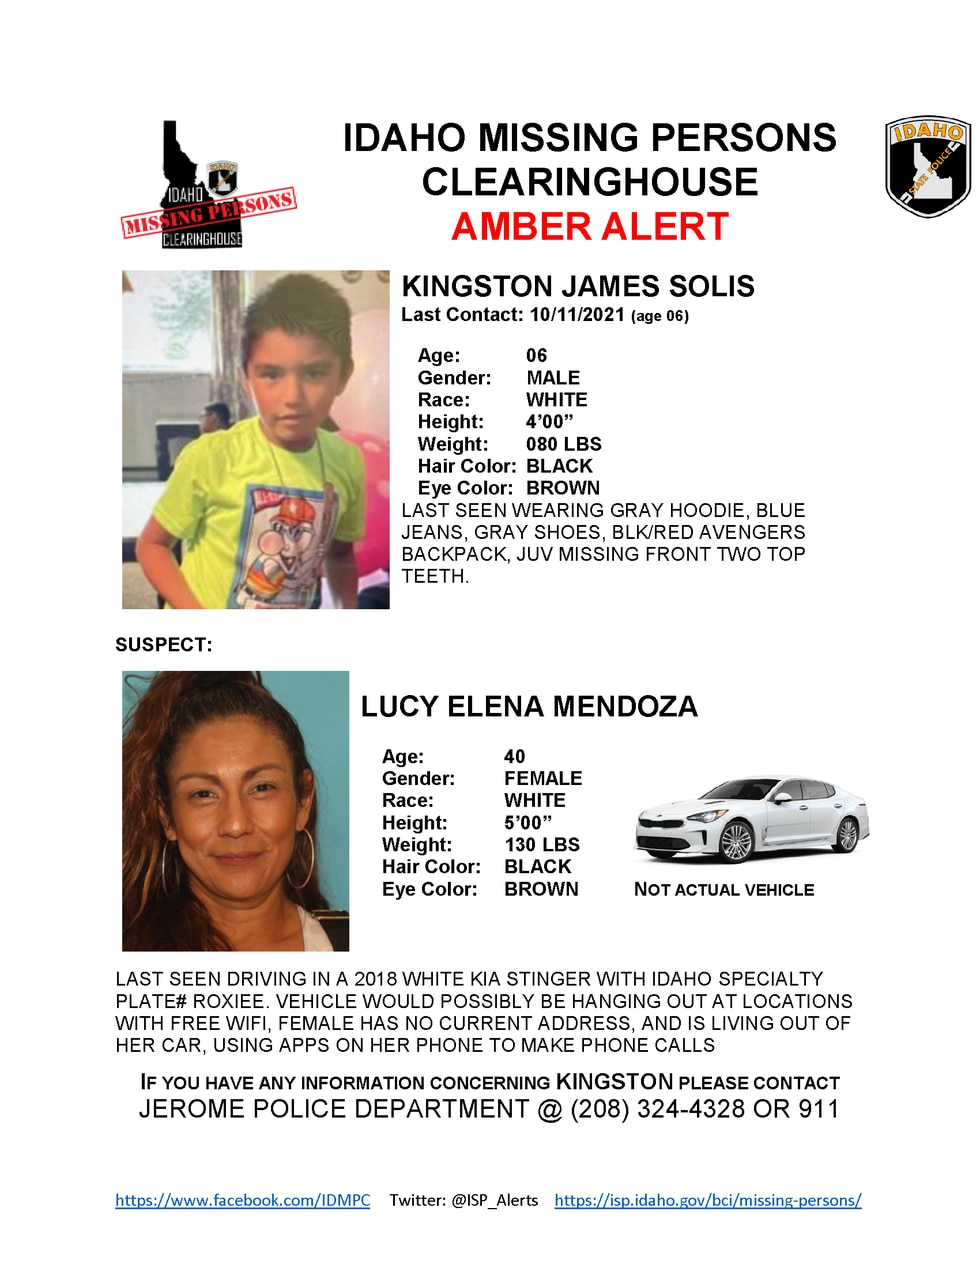 The missing boy is described as a six year old with a gray hoodie and blue jeans